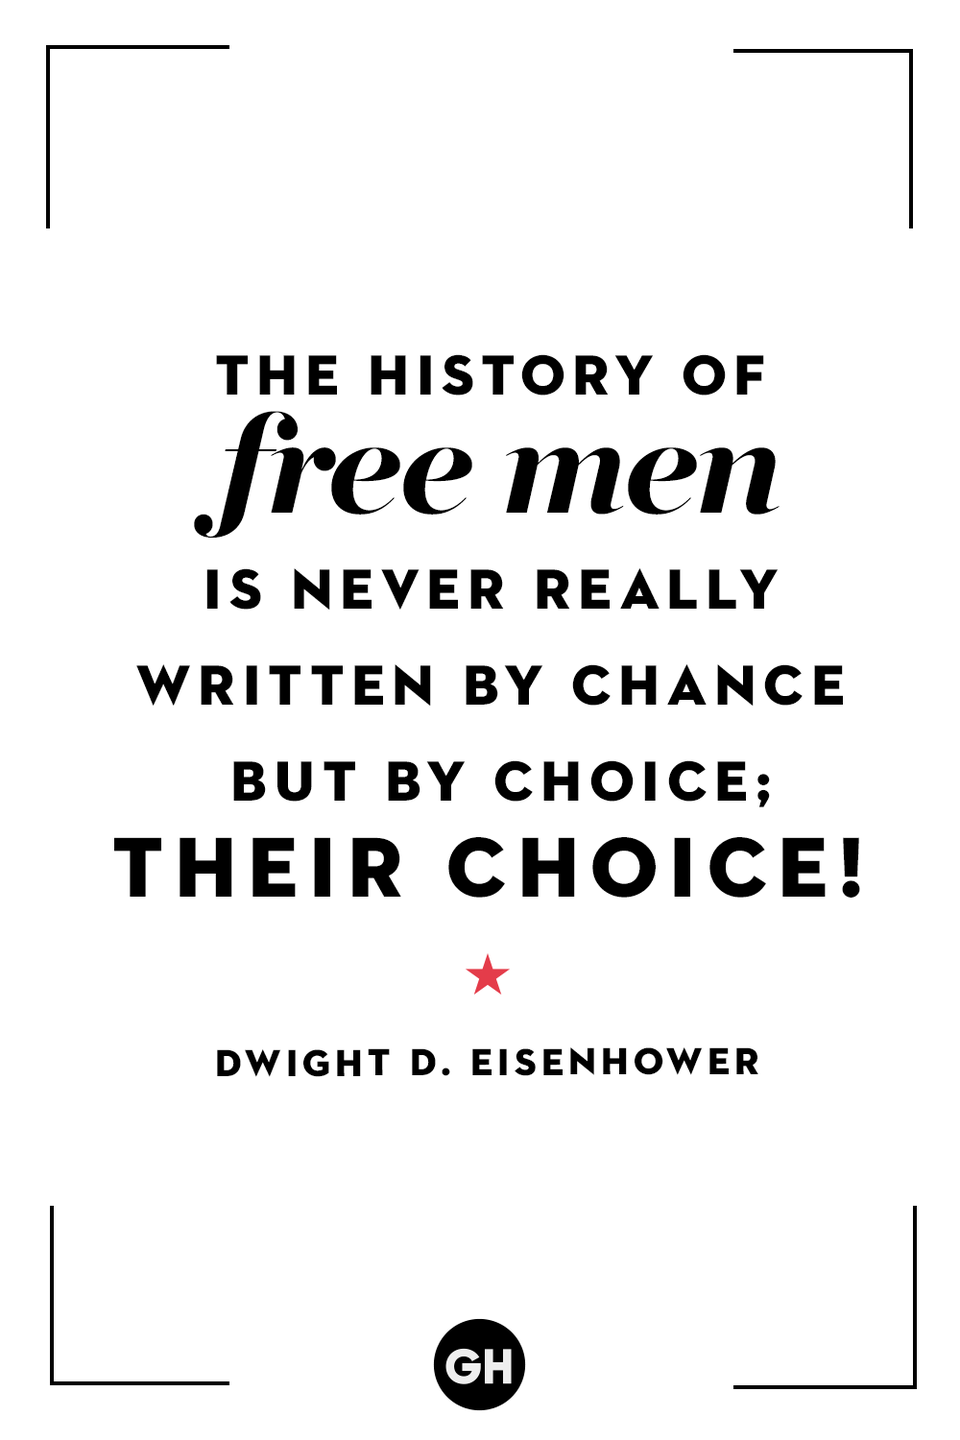 <p>The history of free men is never really written by chance but by choice; their choice!</p>